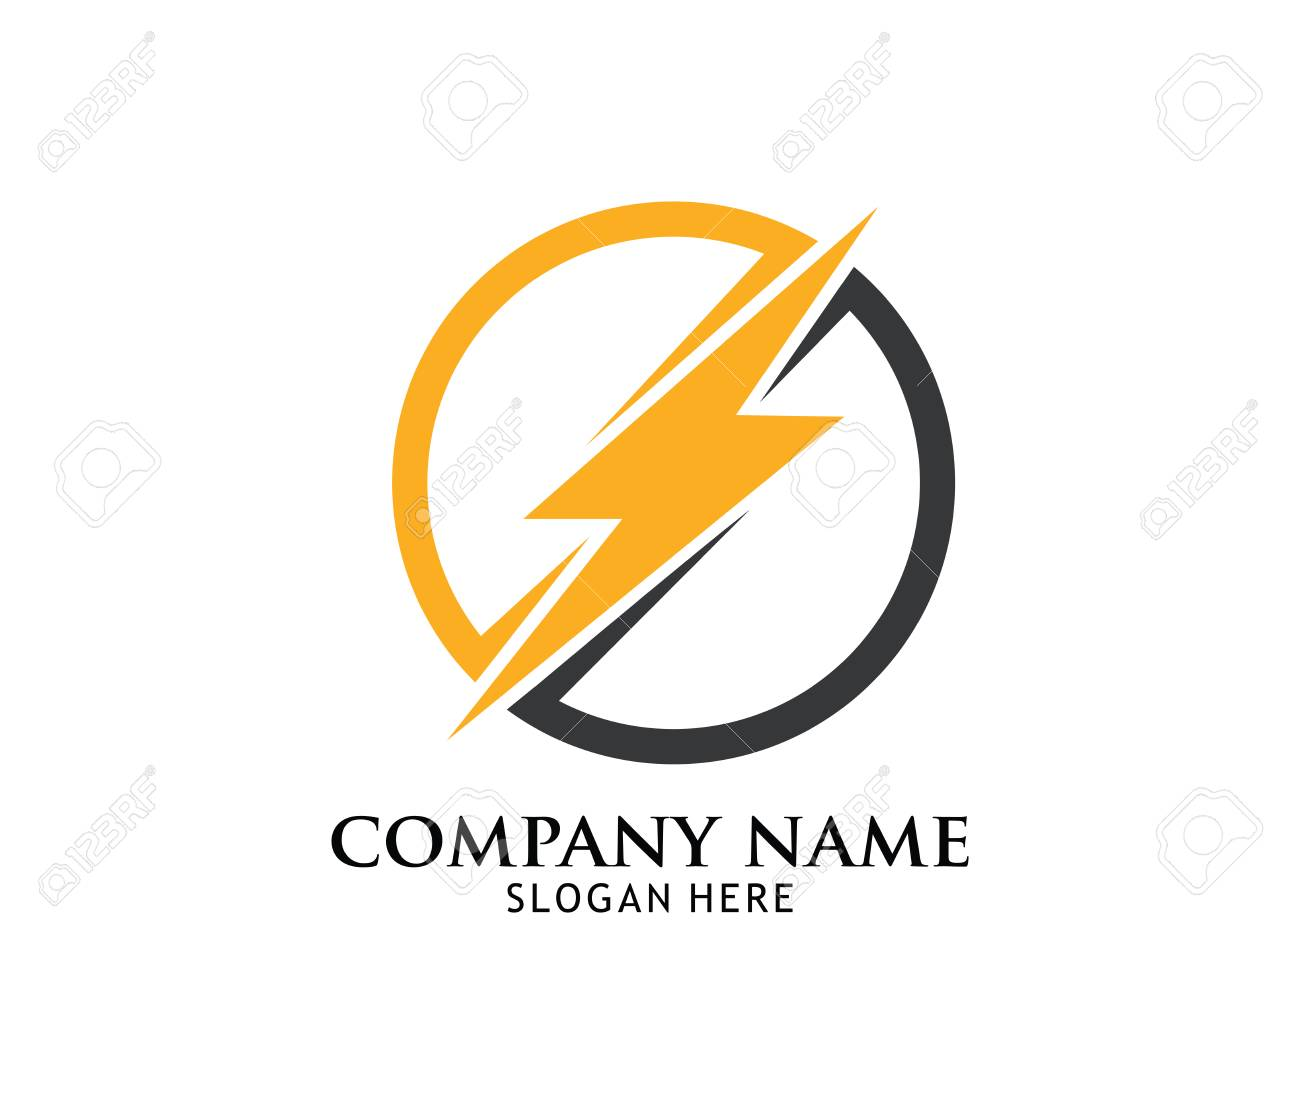 fast lightning power electricity vector logo design template royalty free cliparts vectors and stock illustration image 97809065 fast lightning power electricity vector logo design template